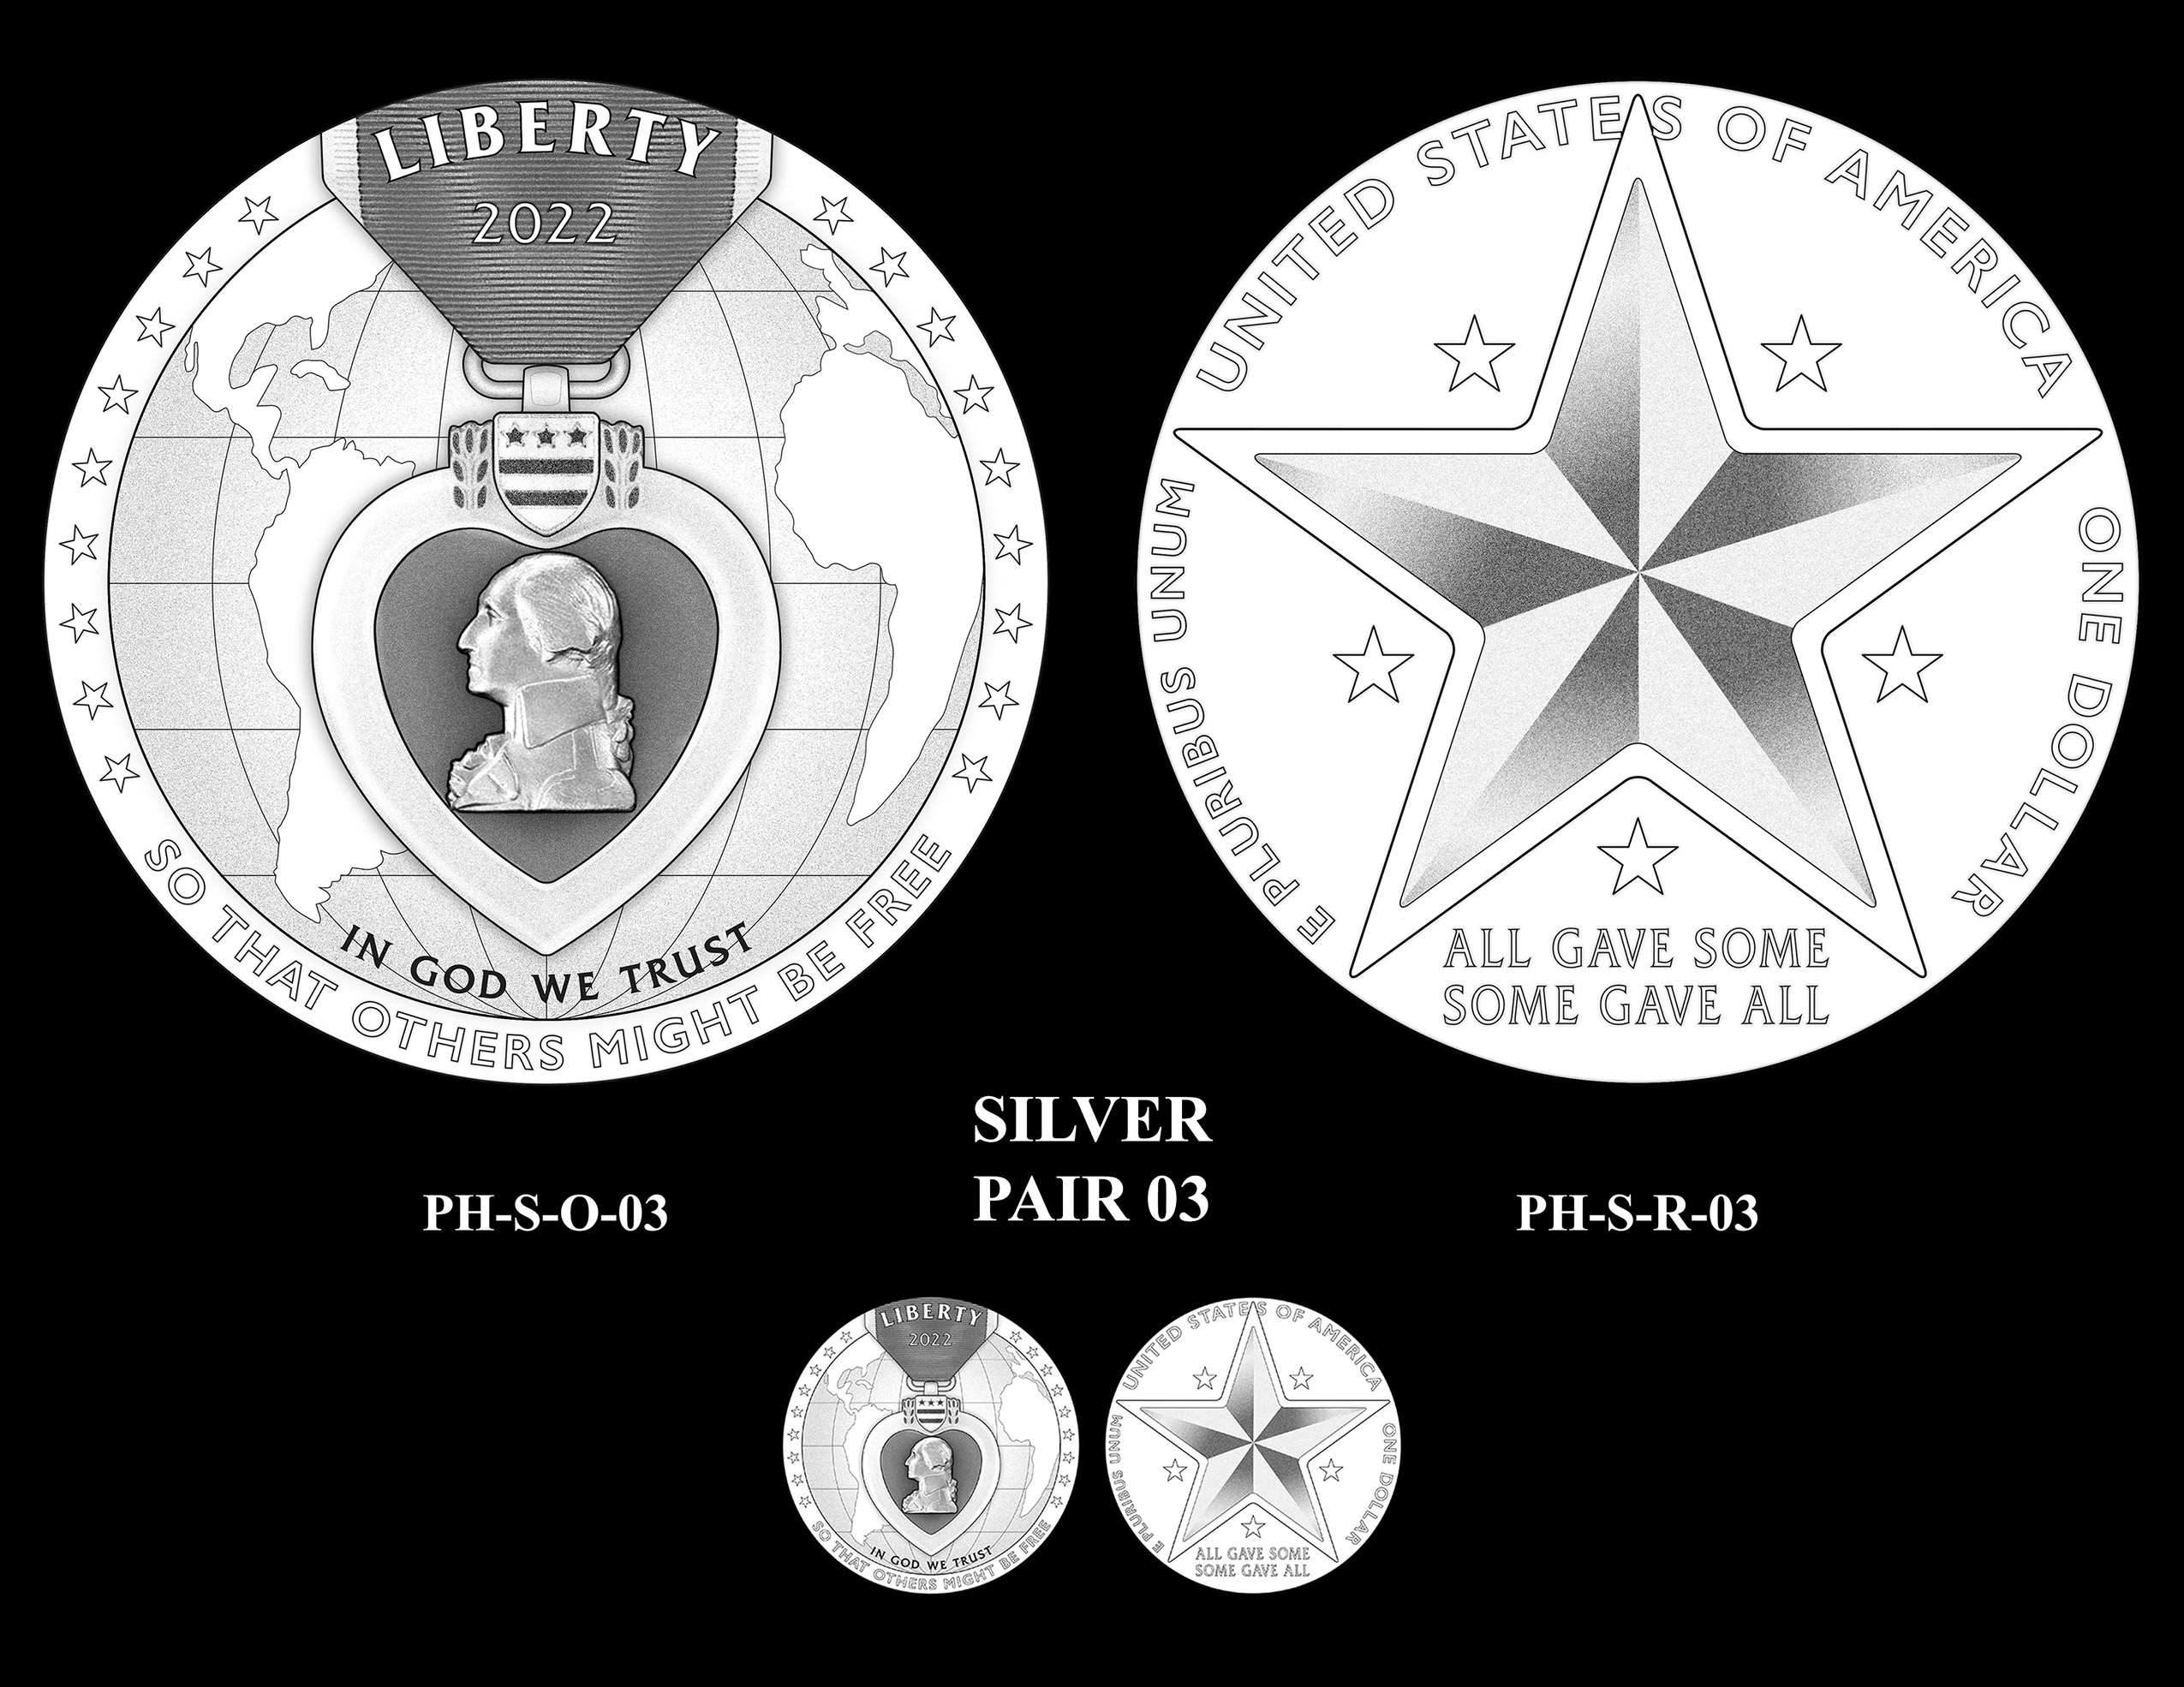 Silver Pair 03 -- National Purple Heart Hall of Honor Commemorative Coin Program